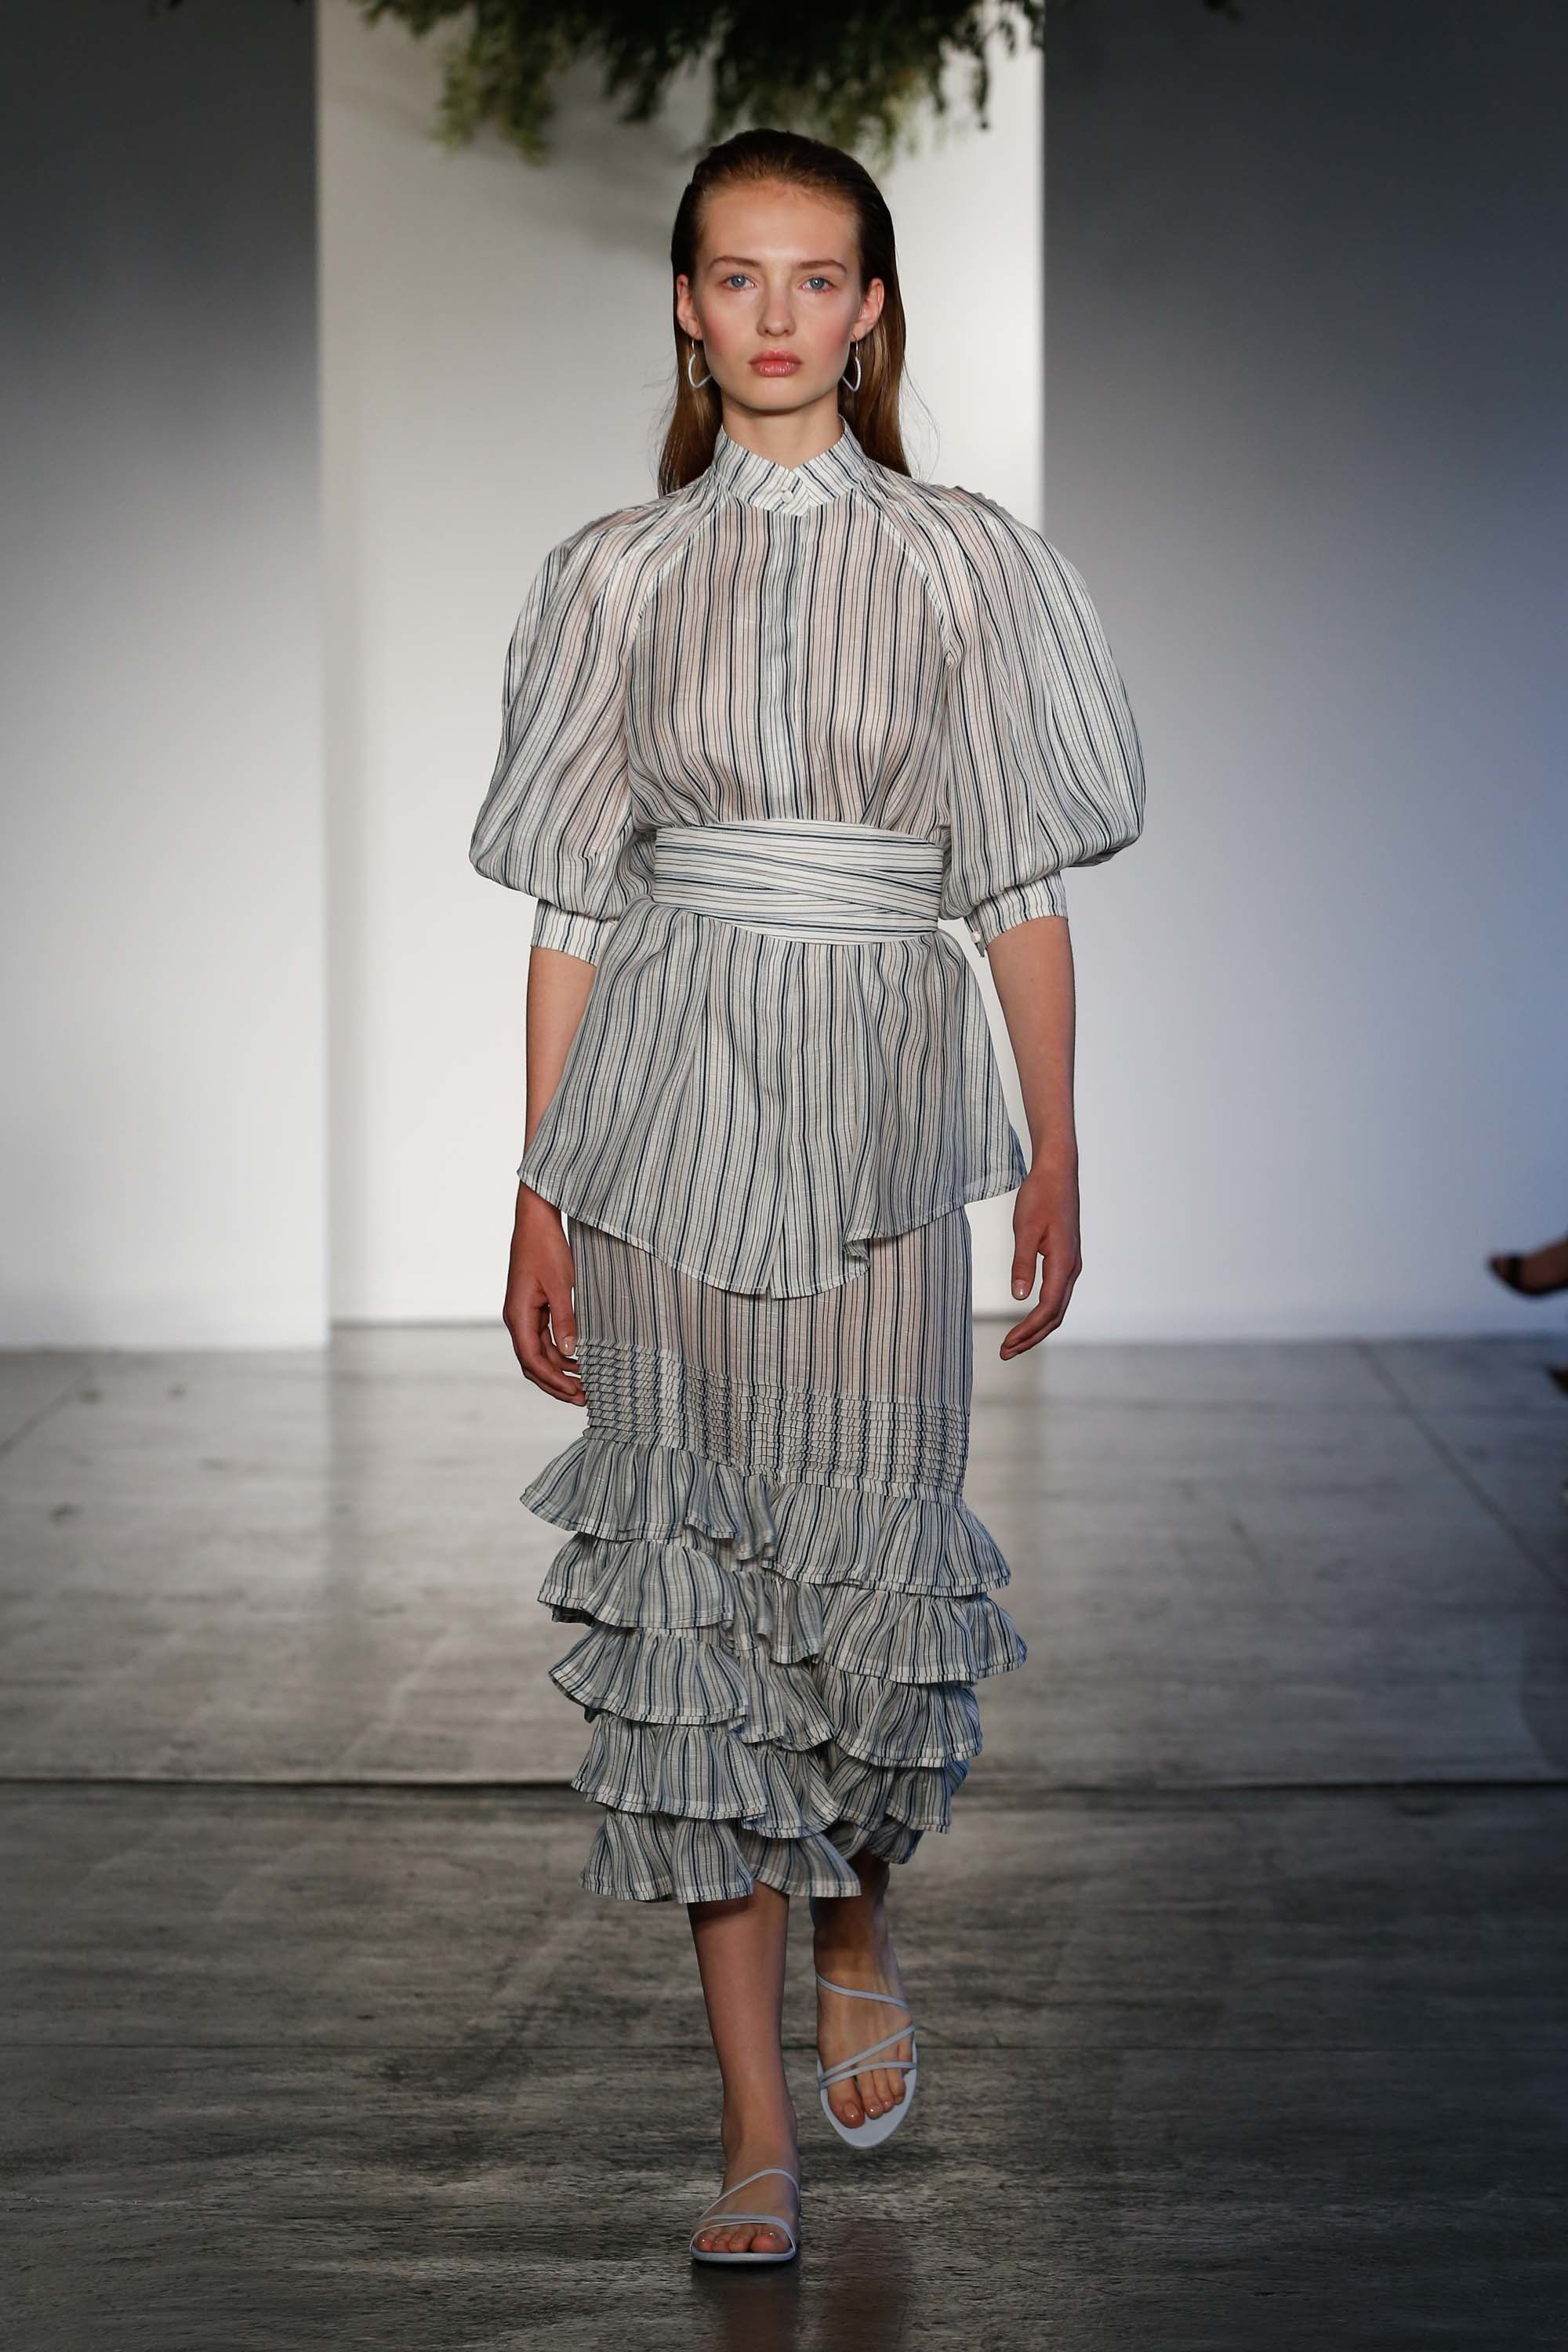 Zimmermann resort fashion show resorts fashion and resort